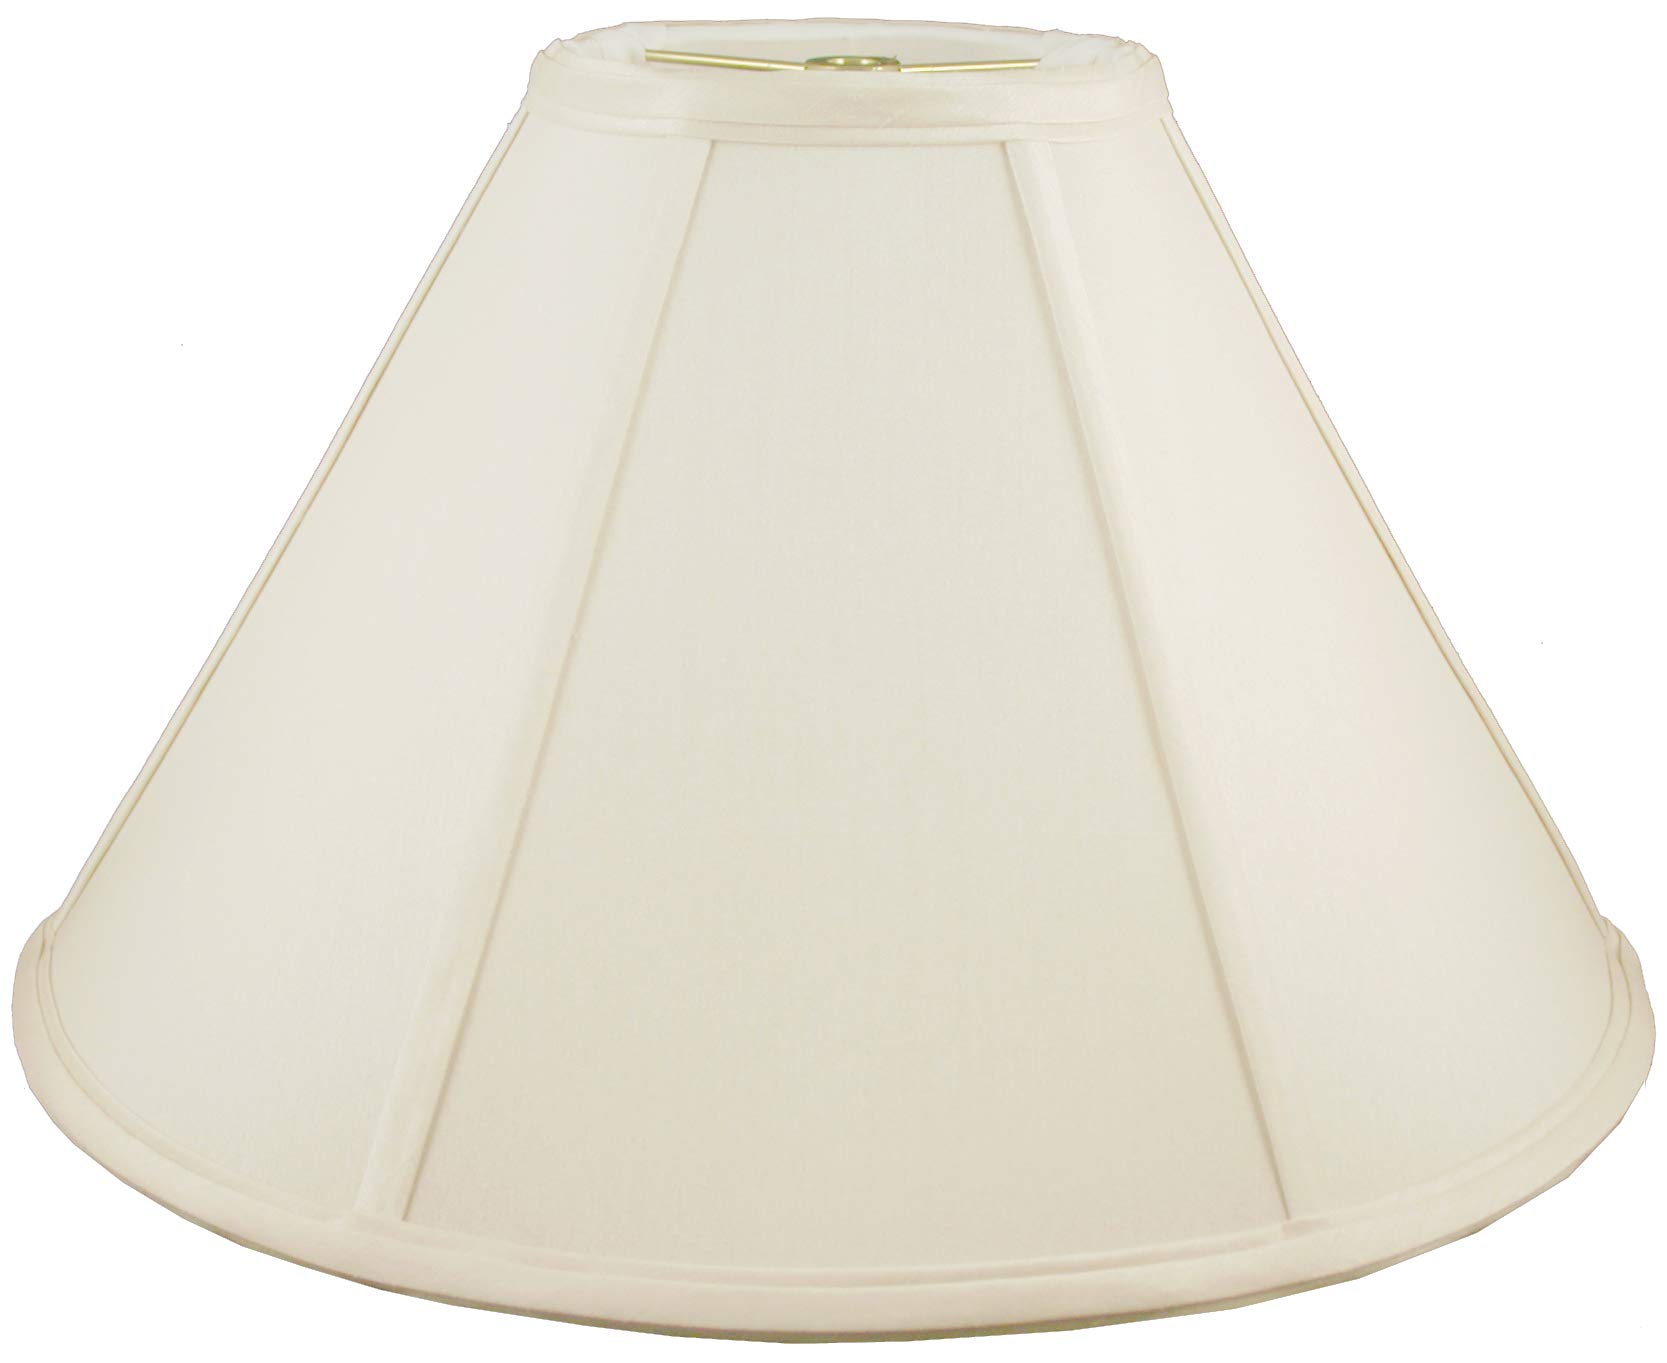 American Pride 6''x 20''x 12'' Round Soft Shantung Tailored Lampshade, Eggshell